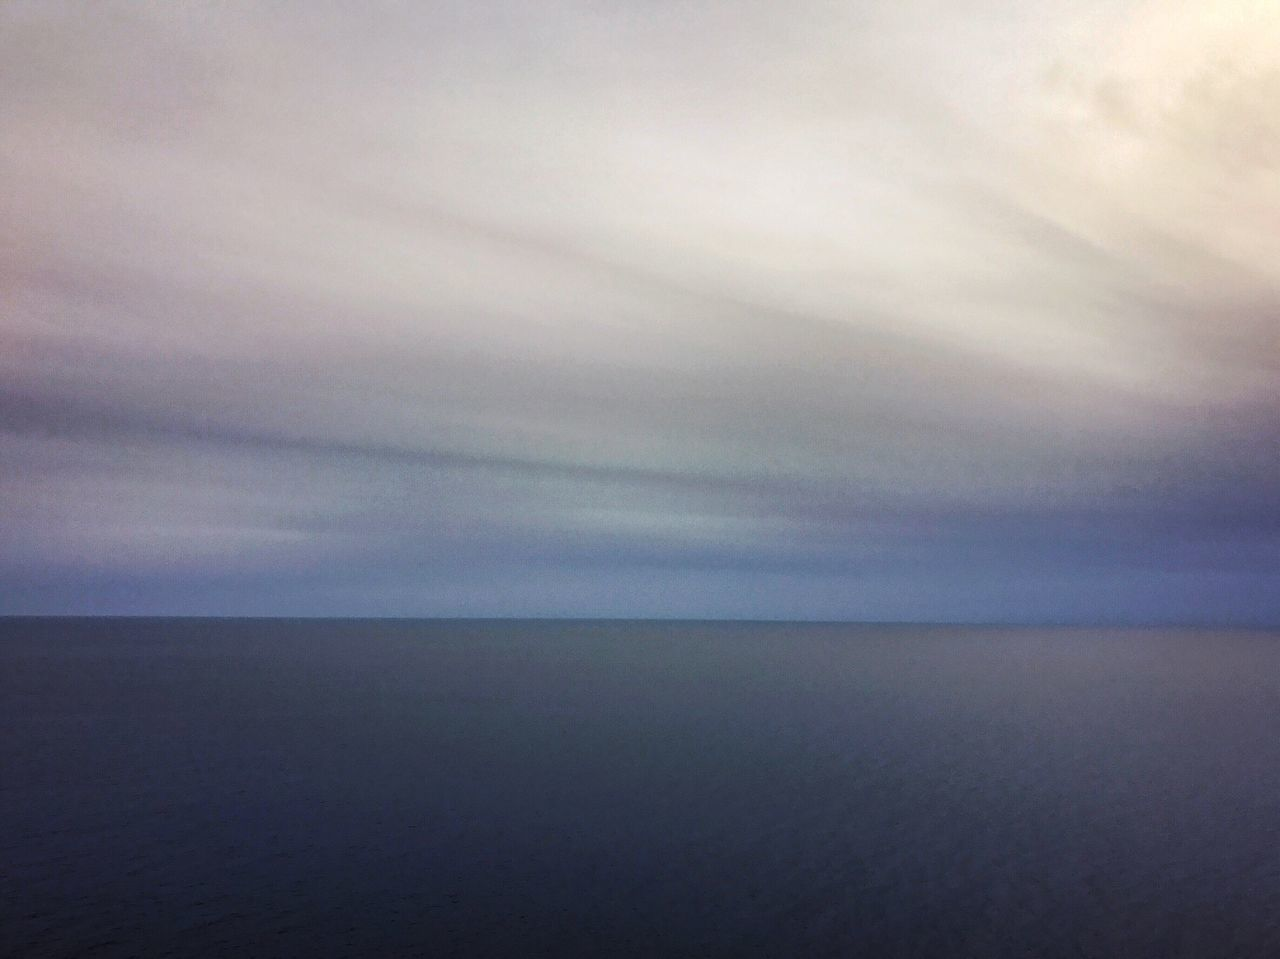 Sea Horizon Over Water Sky Scenics Tranquil Scene Tranquility Beauty In Nature Nature Cloud - Sky Water Idyllic No People Outdoors Day Seascape EyeEm Nature Lover